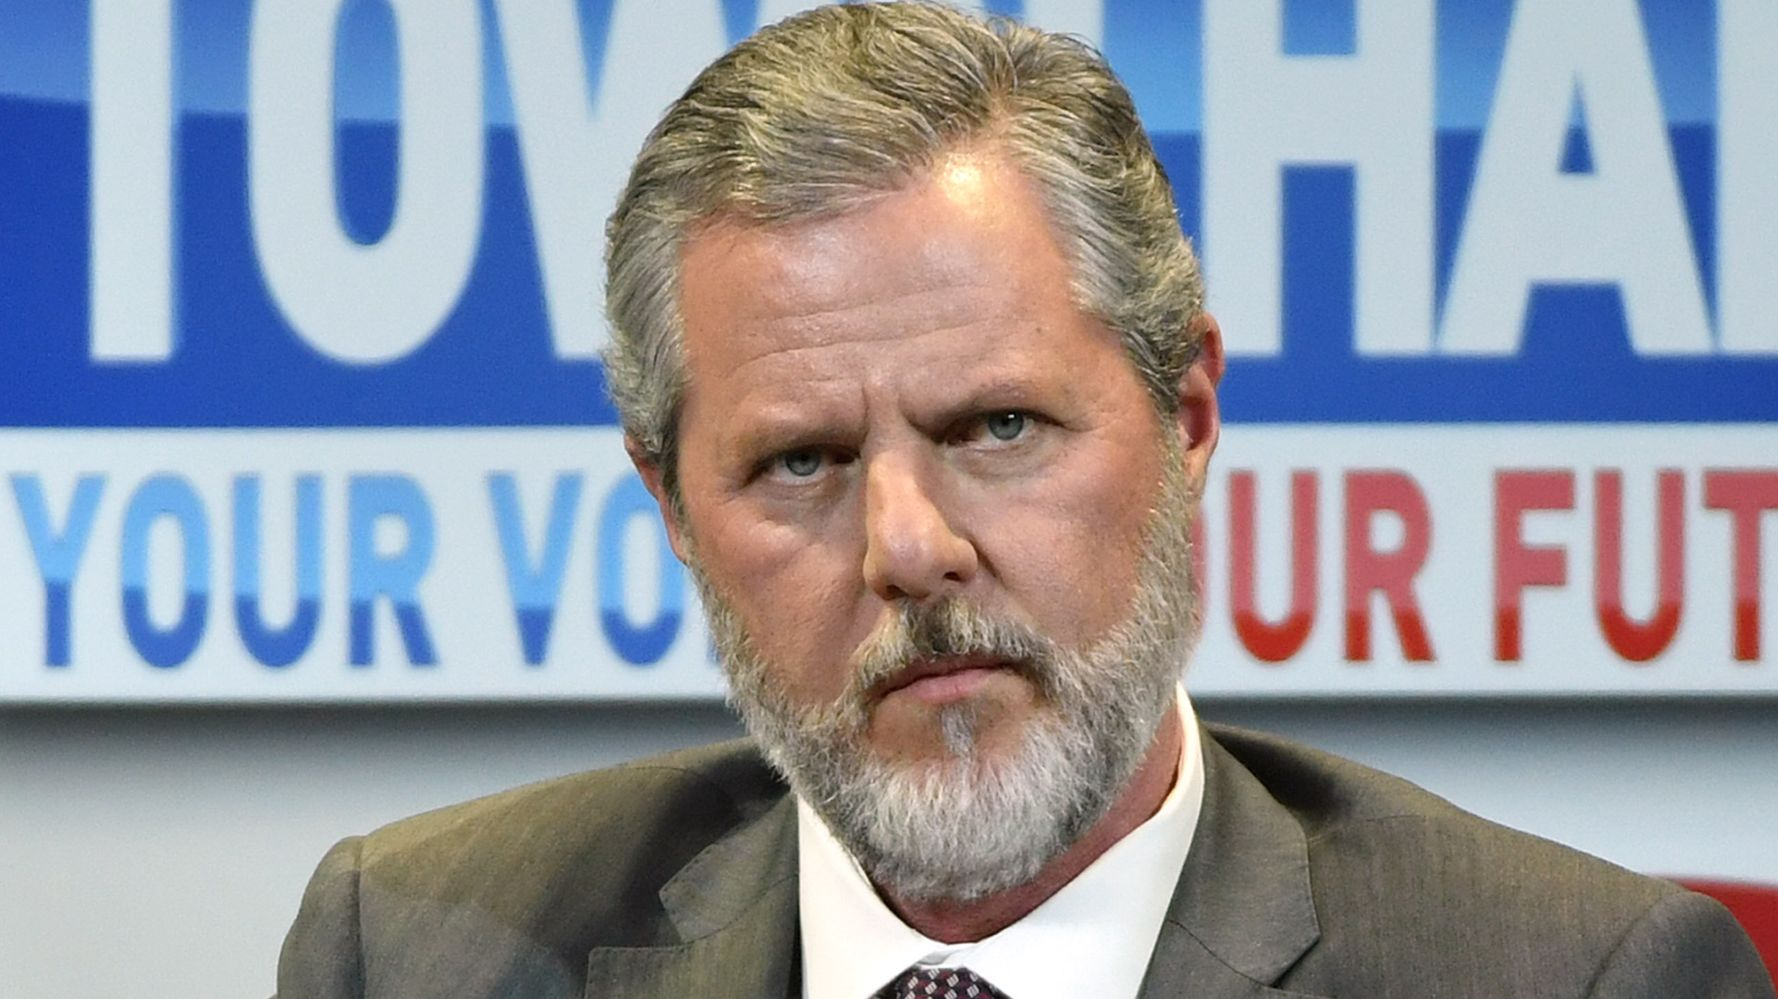 Jerry Falwell Jr. Shares, Then Deletes, Bizarre Pic With His Pants Unzipped